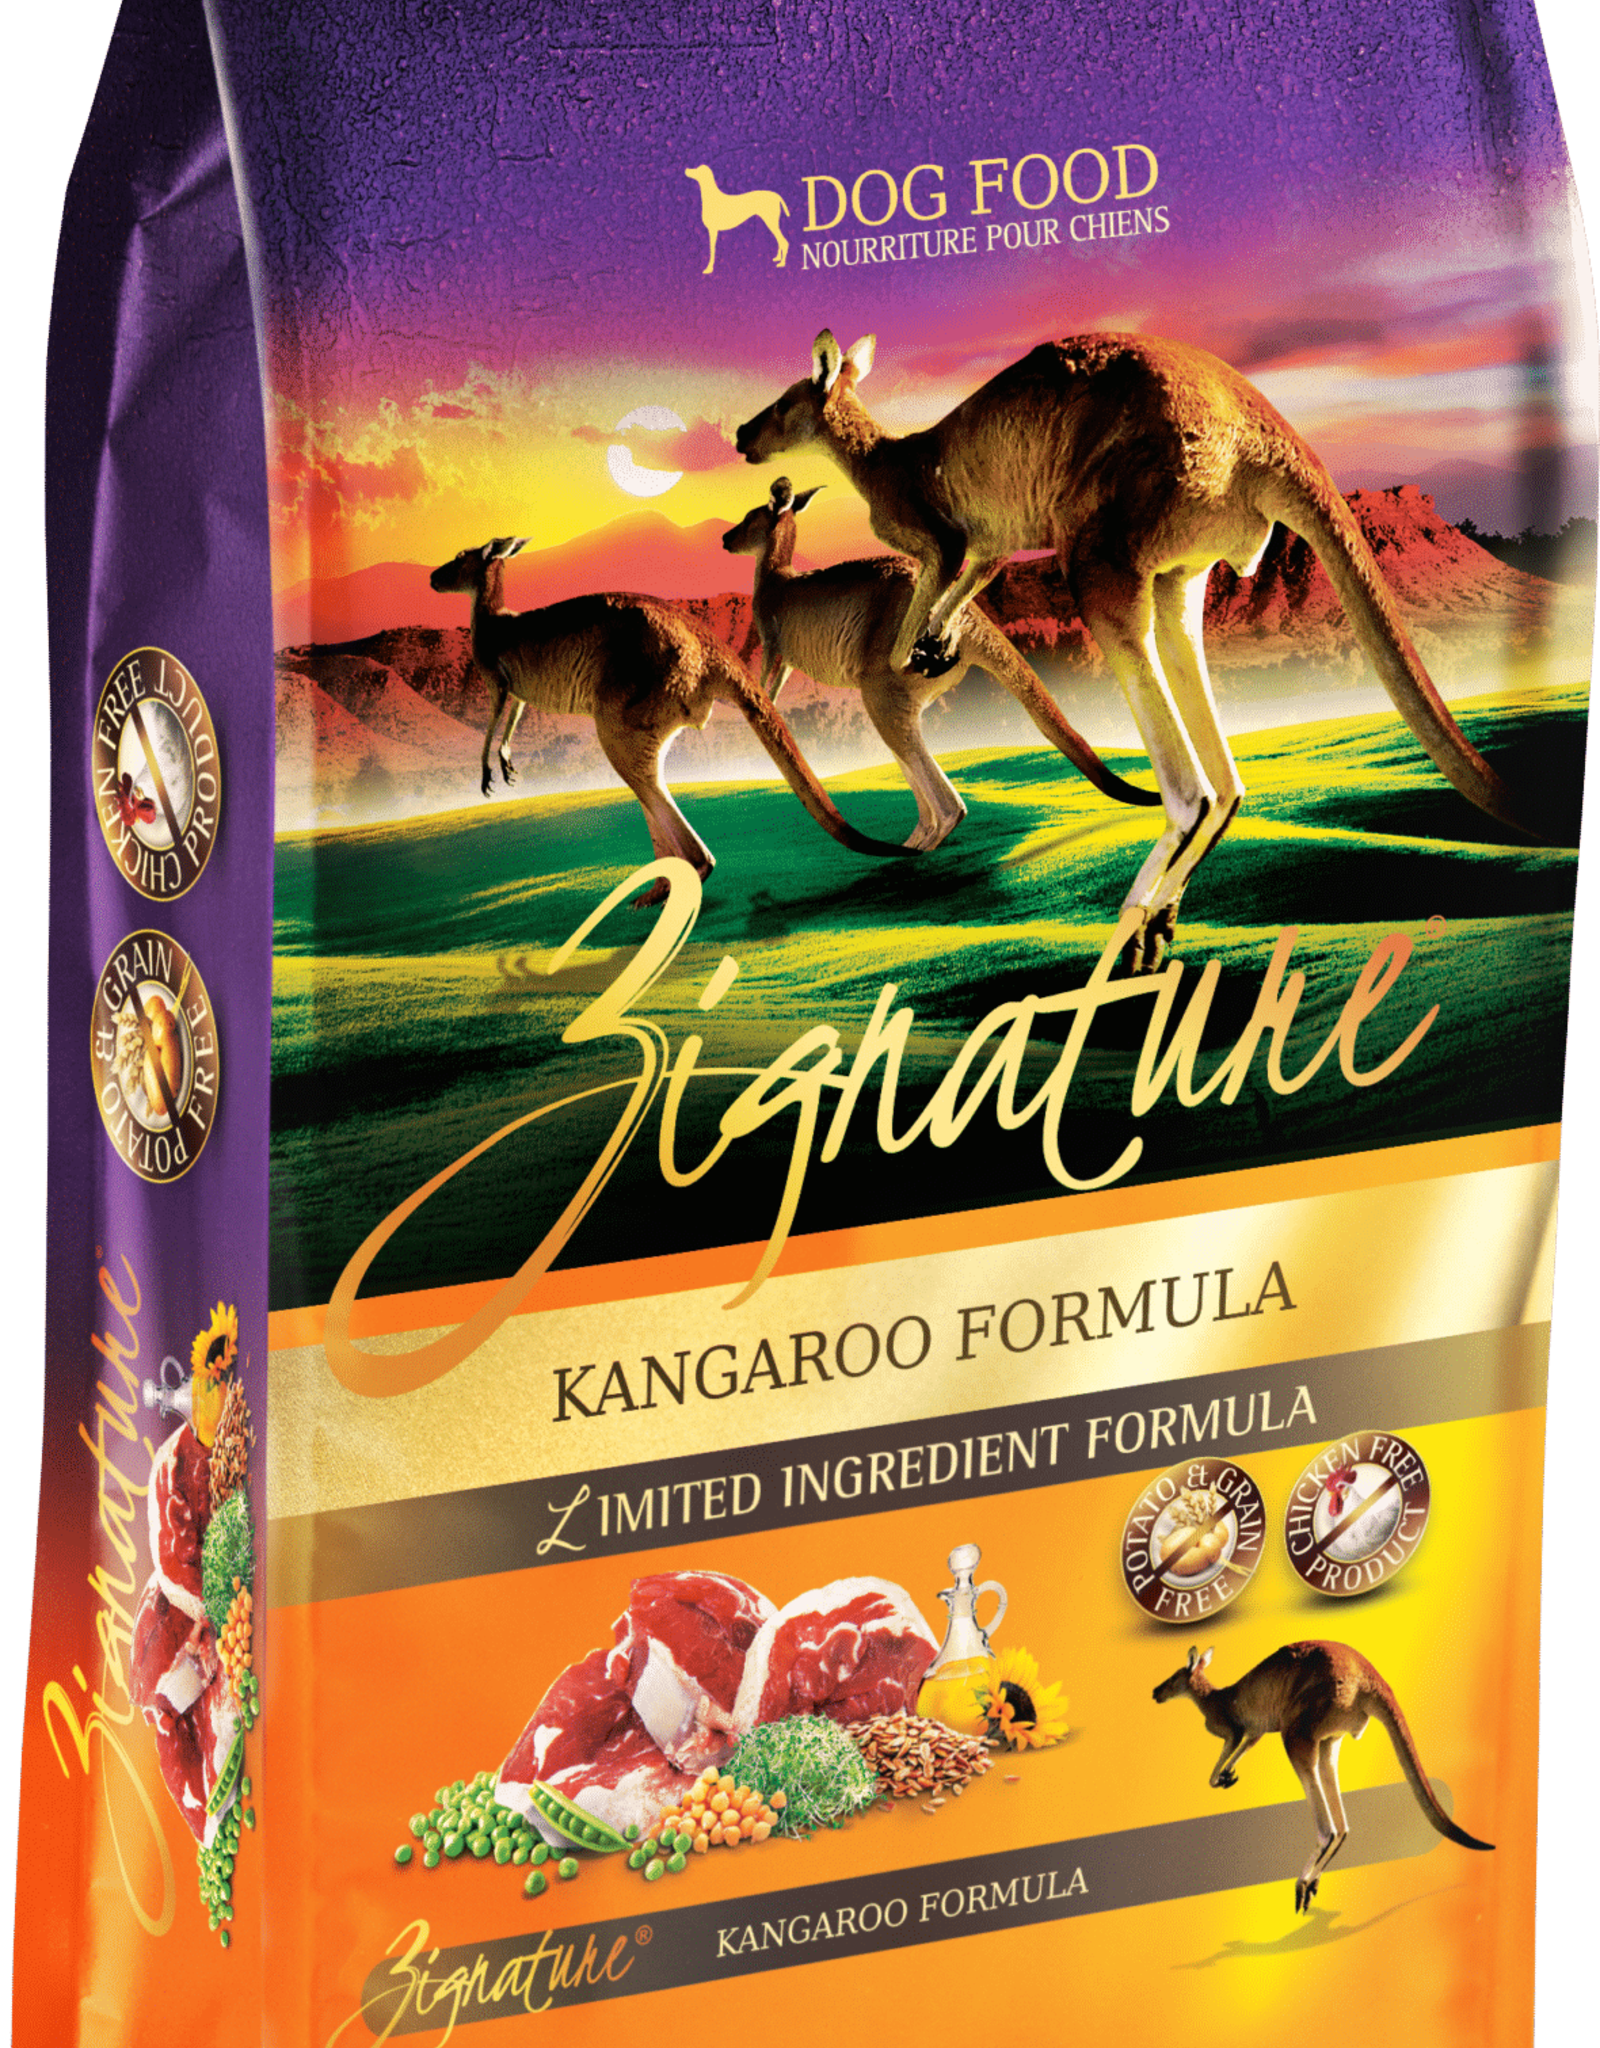 Zignature Zignature Kangaroo Dog Food